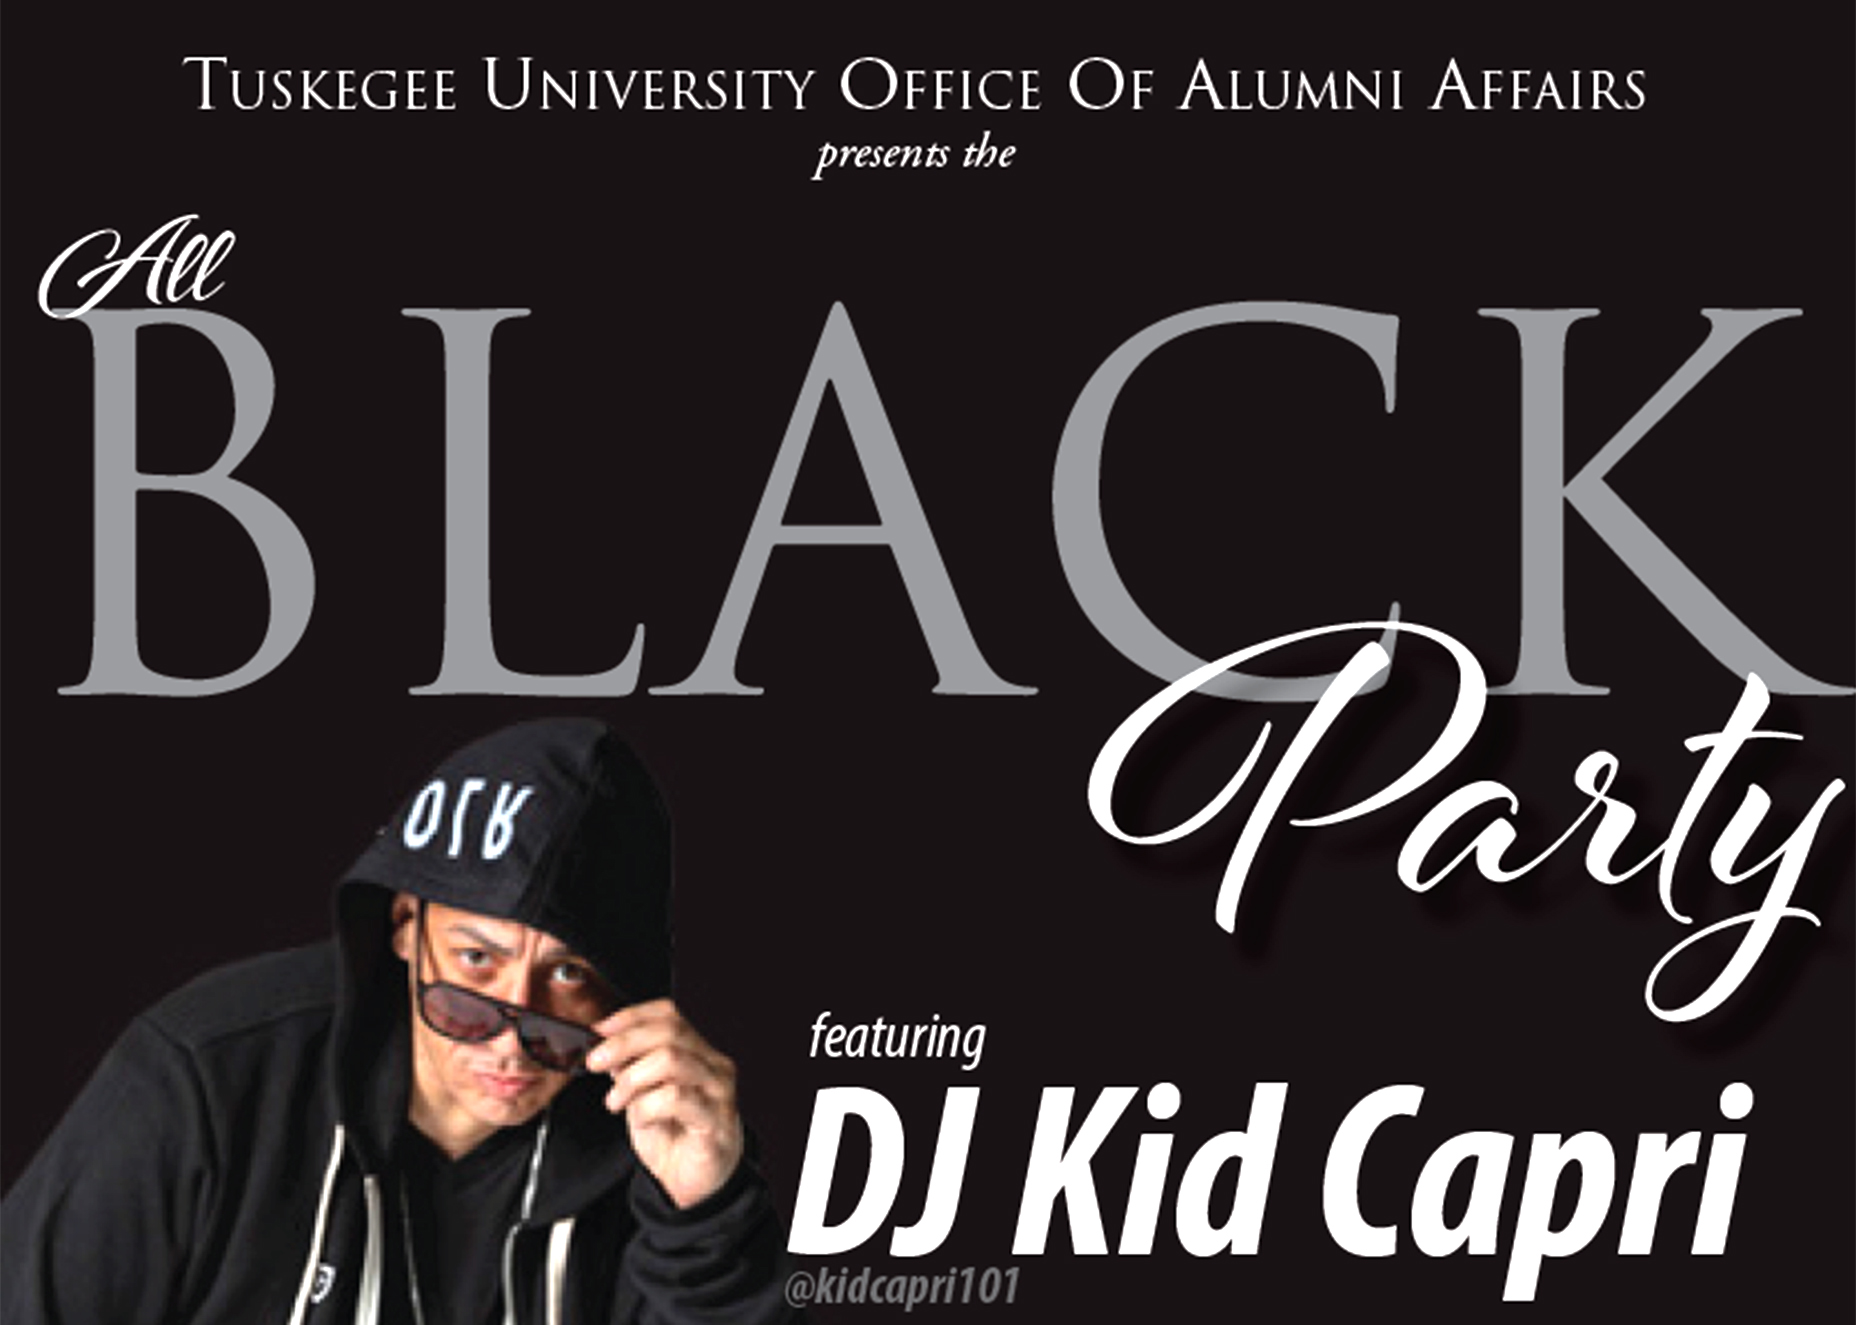 Flyer showing DJ Kid Capri and ticket prices